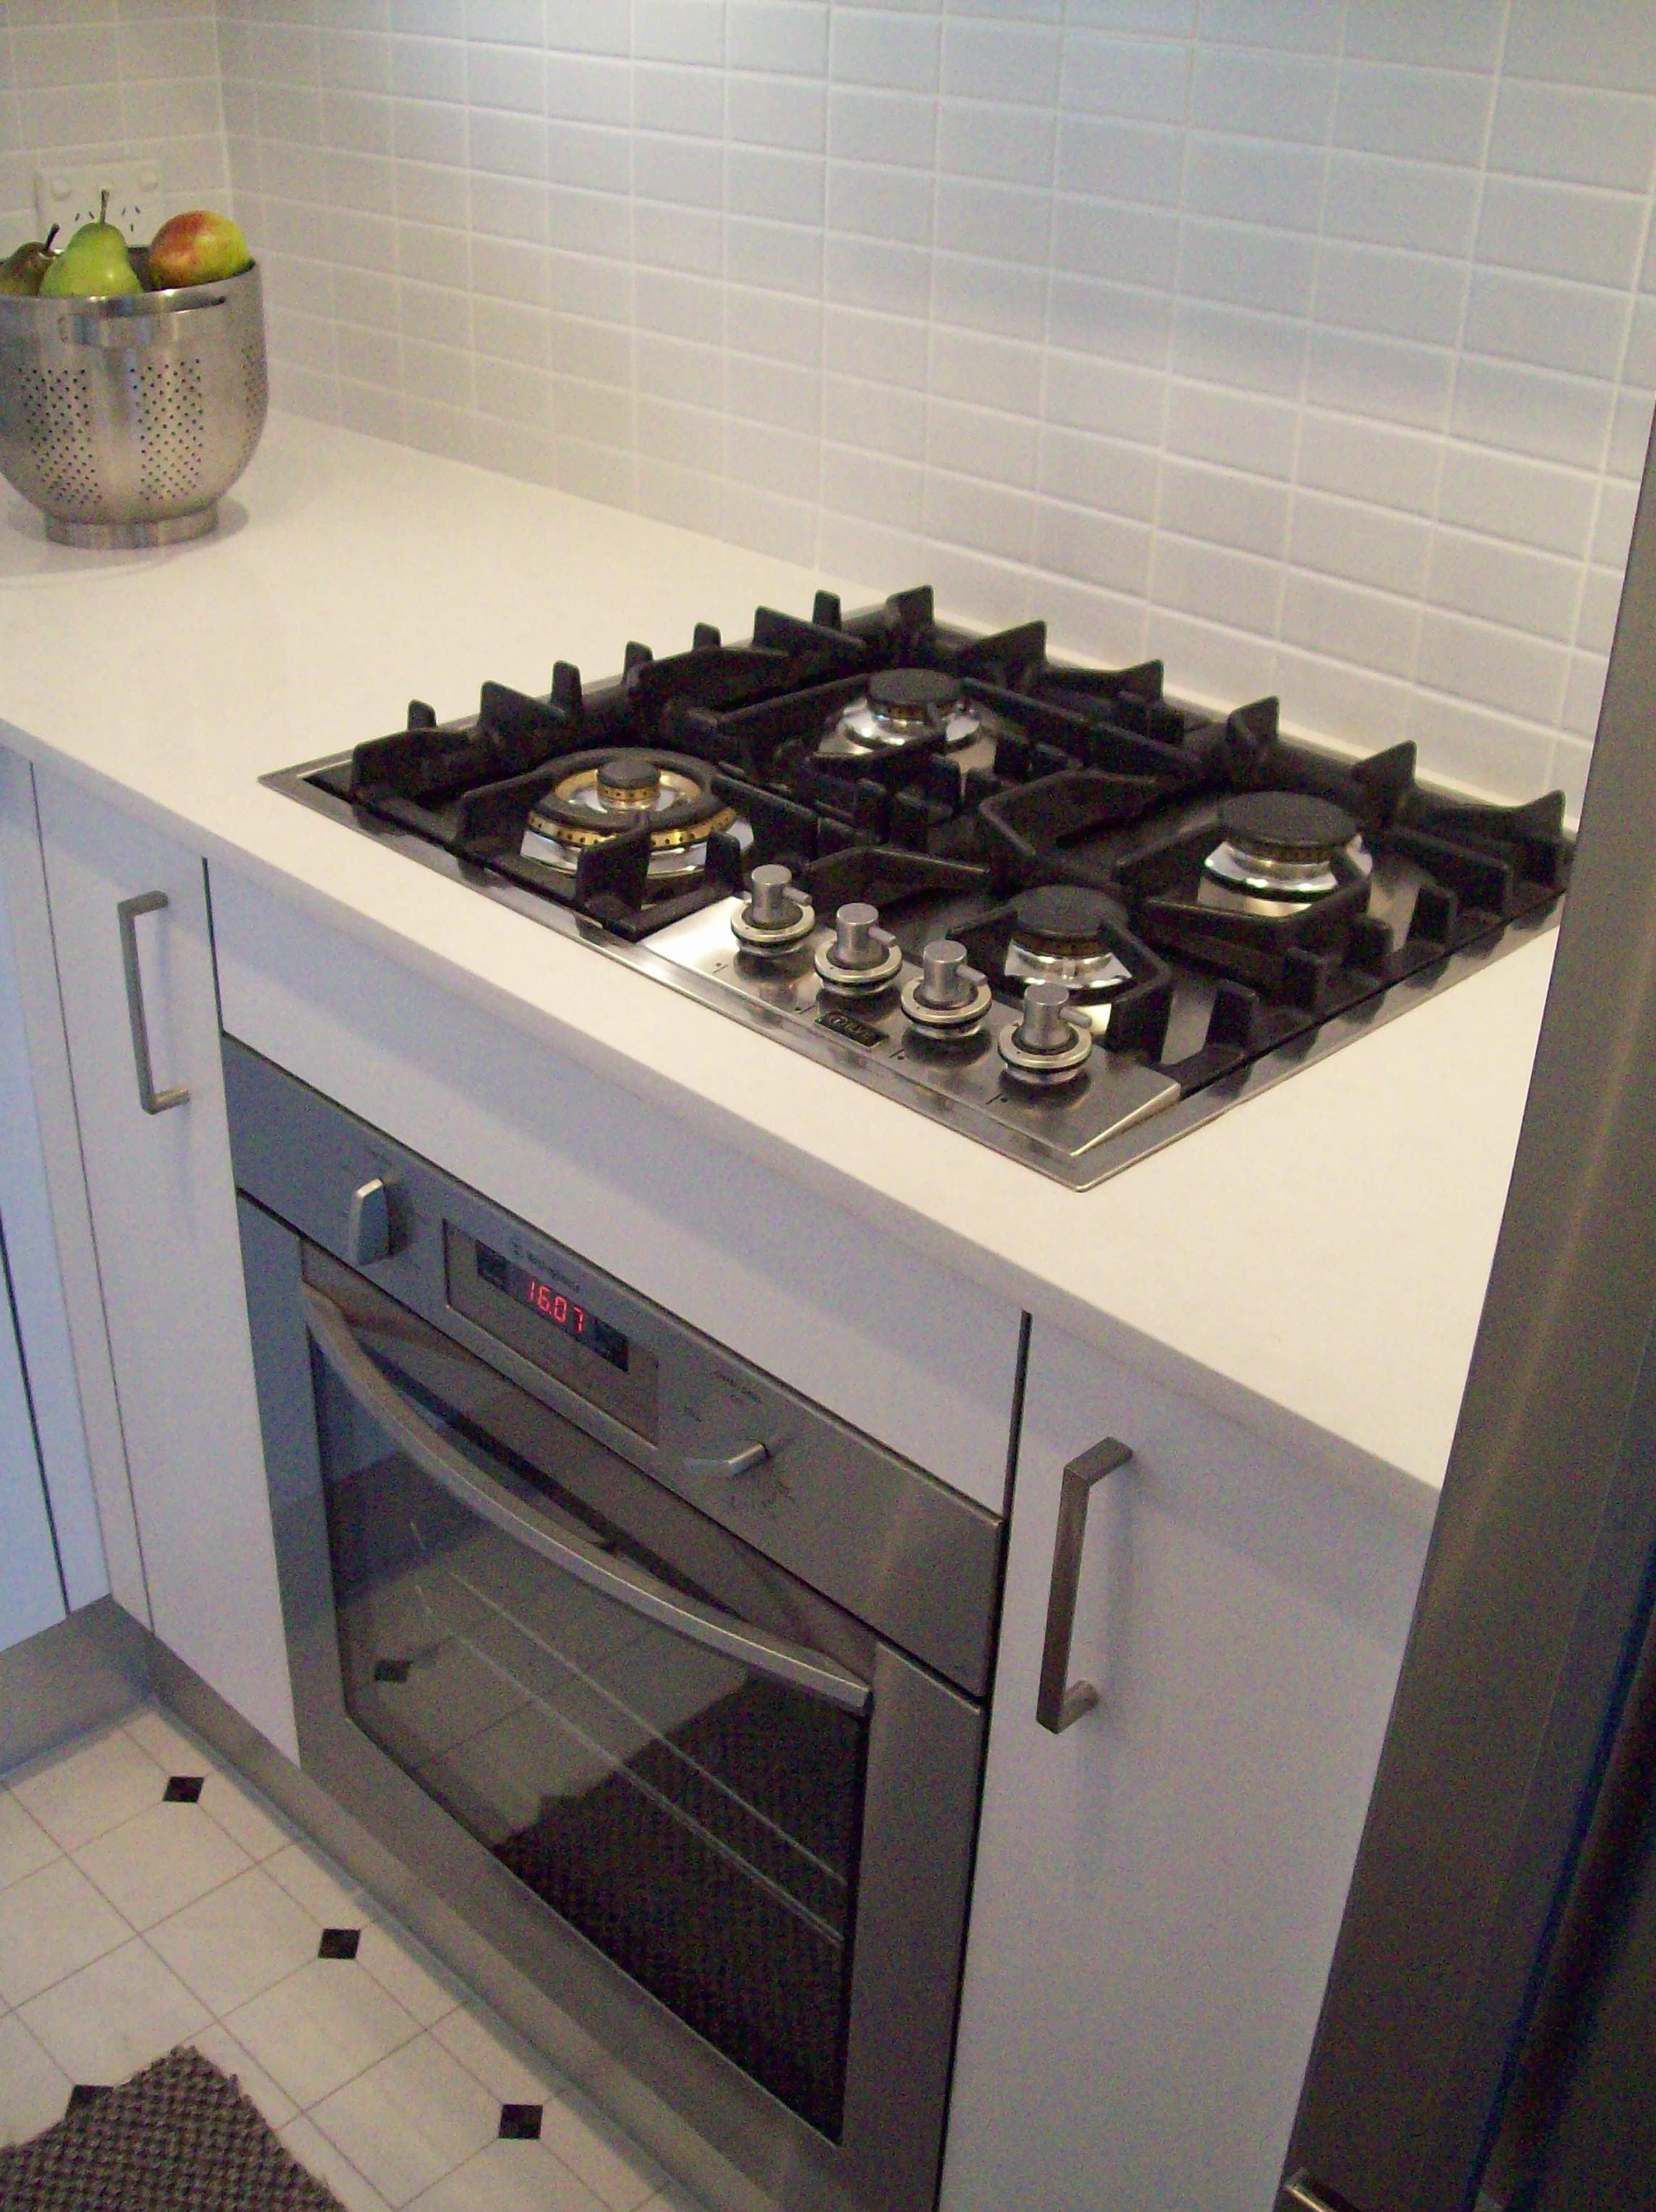 Gas cook top underbench oven and pull out units either side for